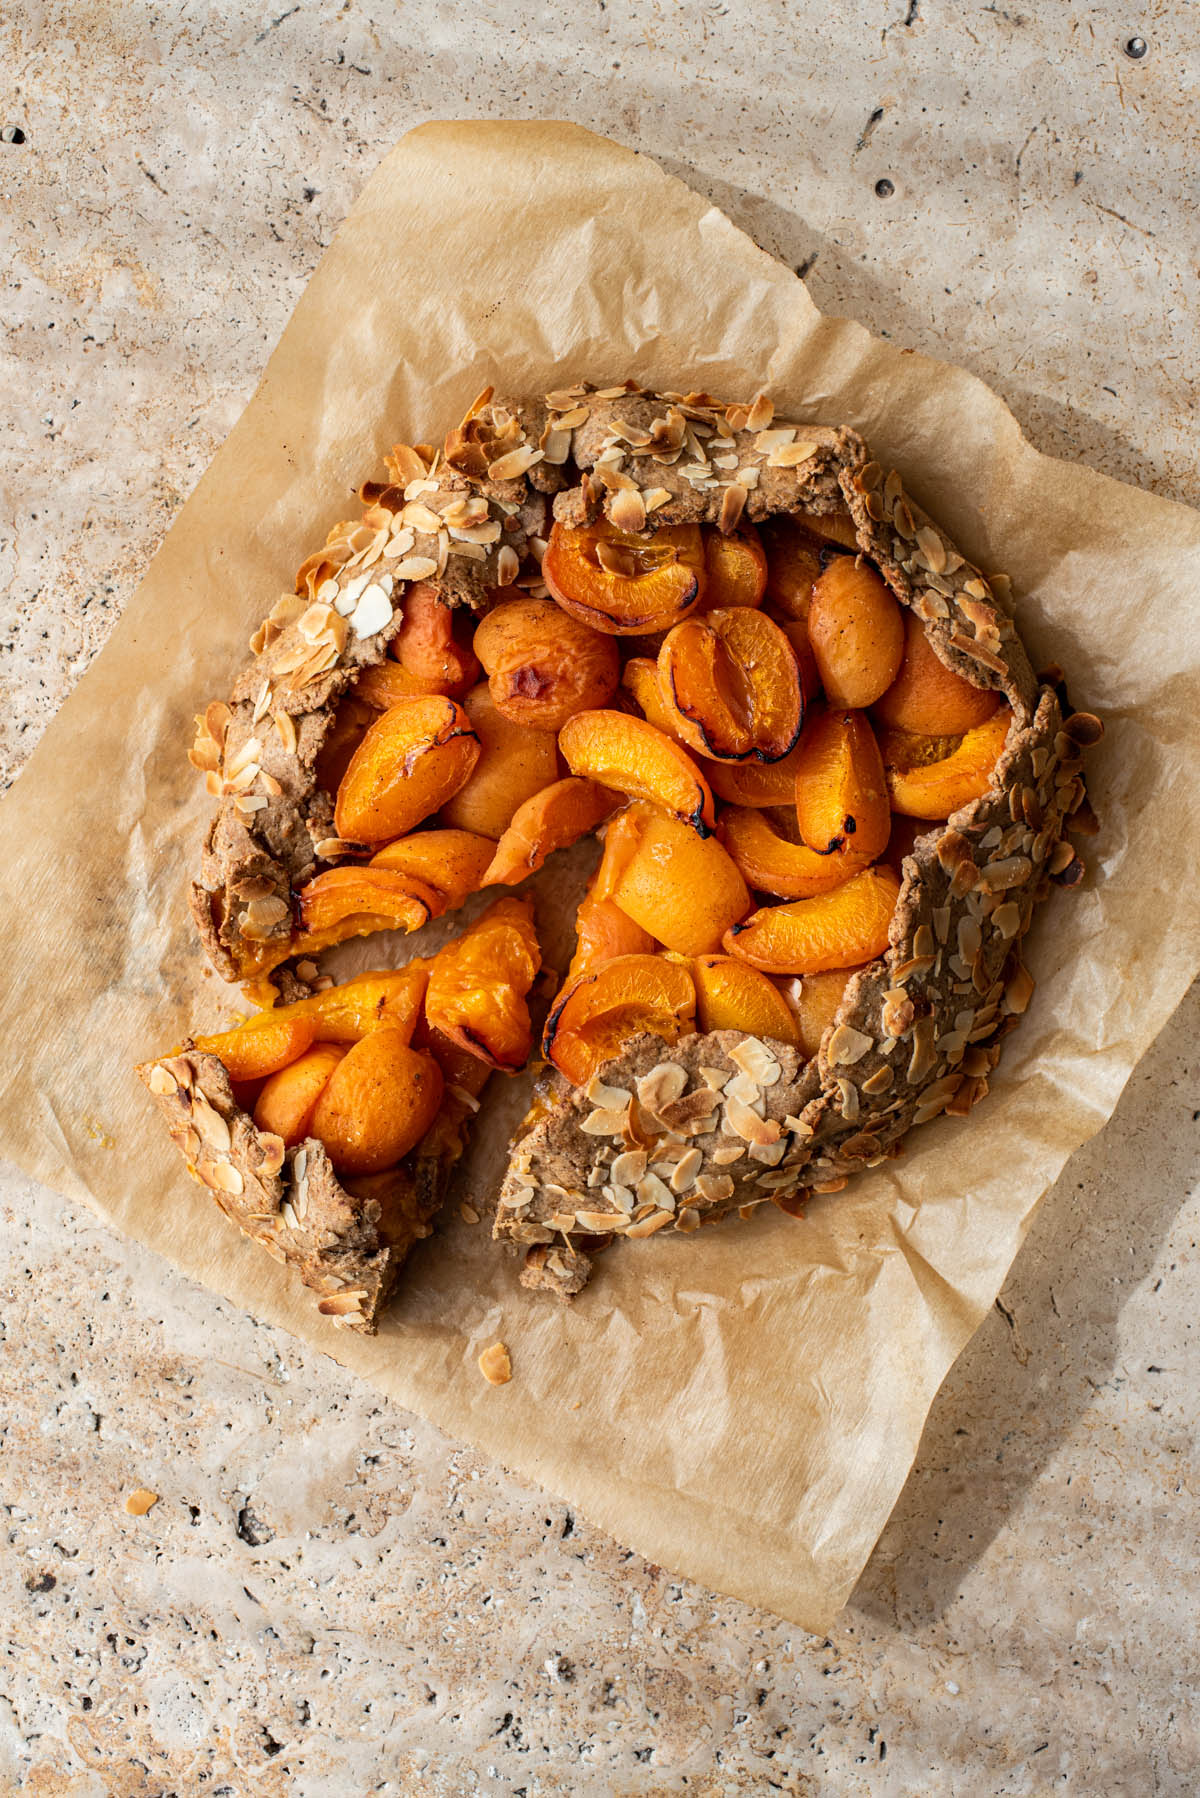 Apricot galette on parchment paper with one slice cut, in dappled sunlight.